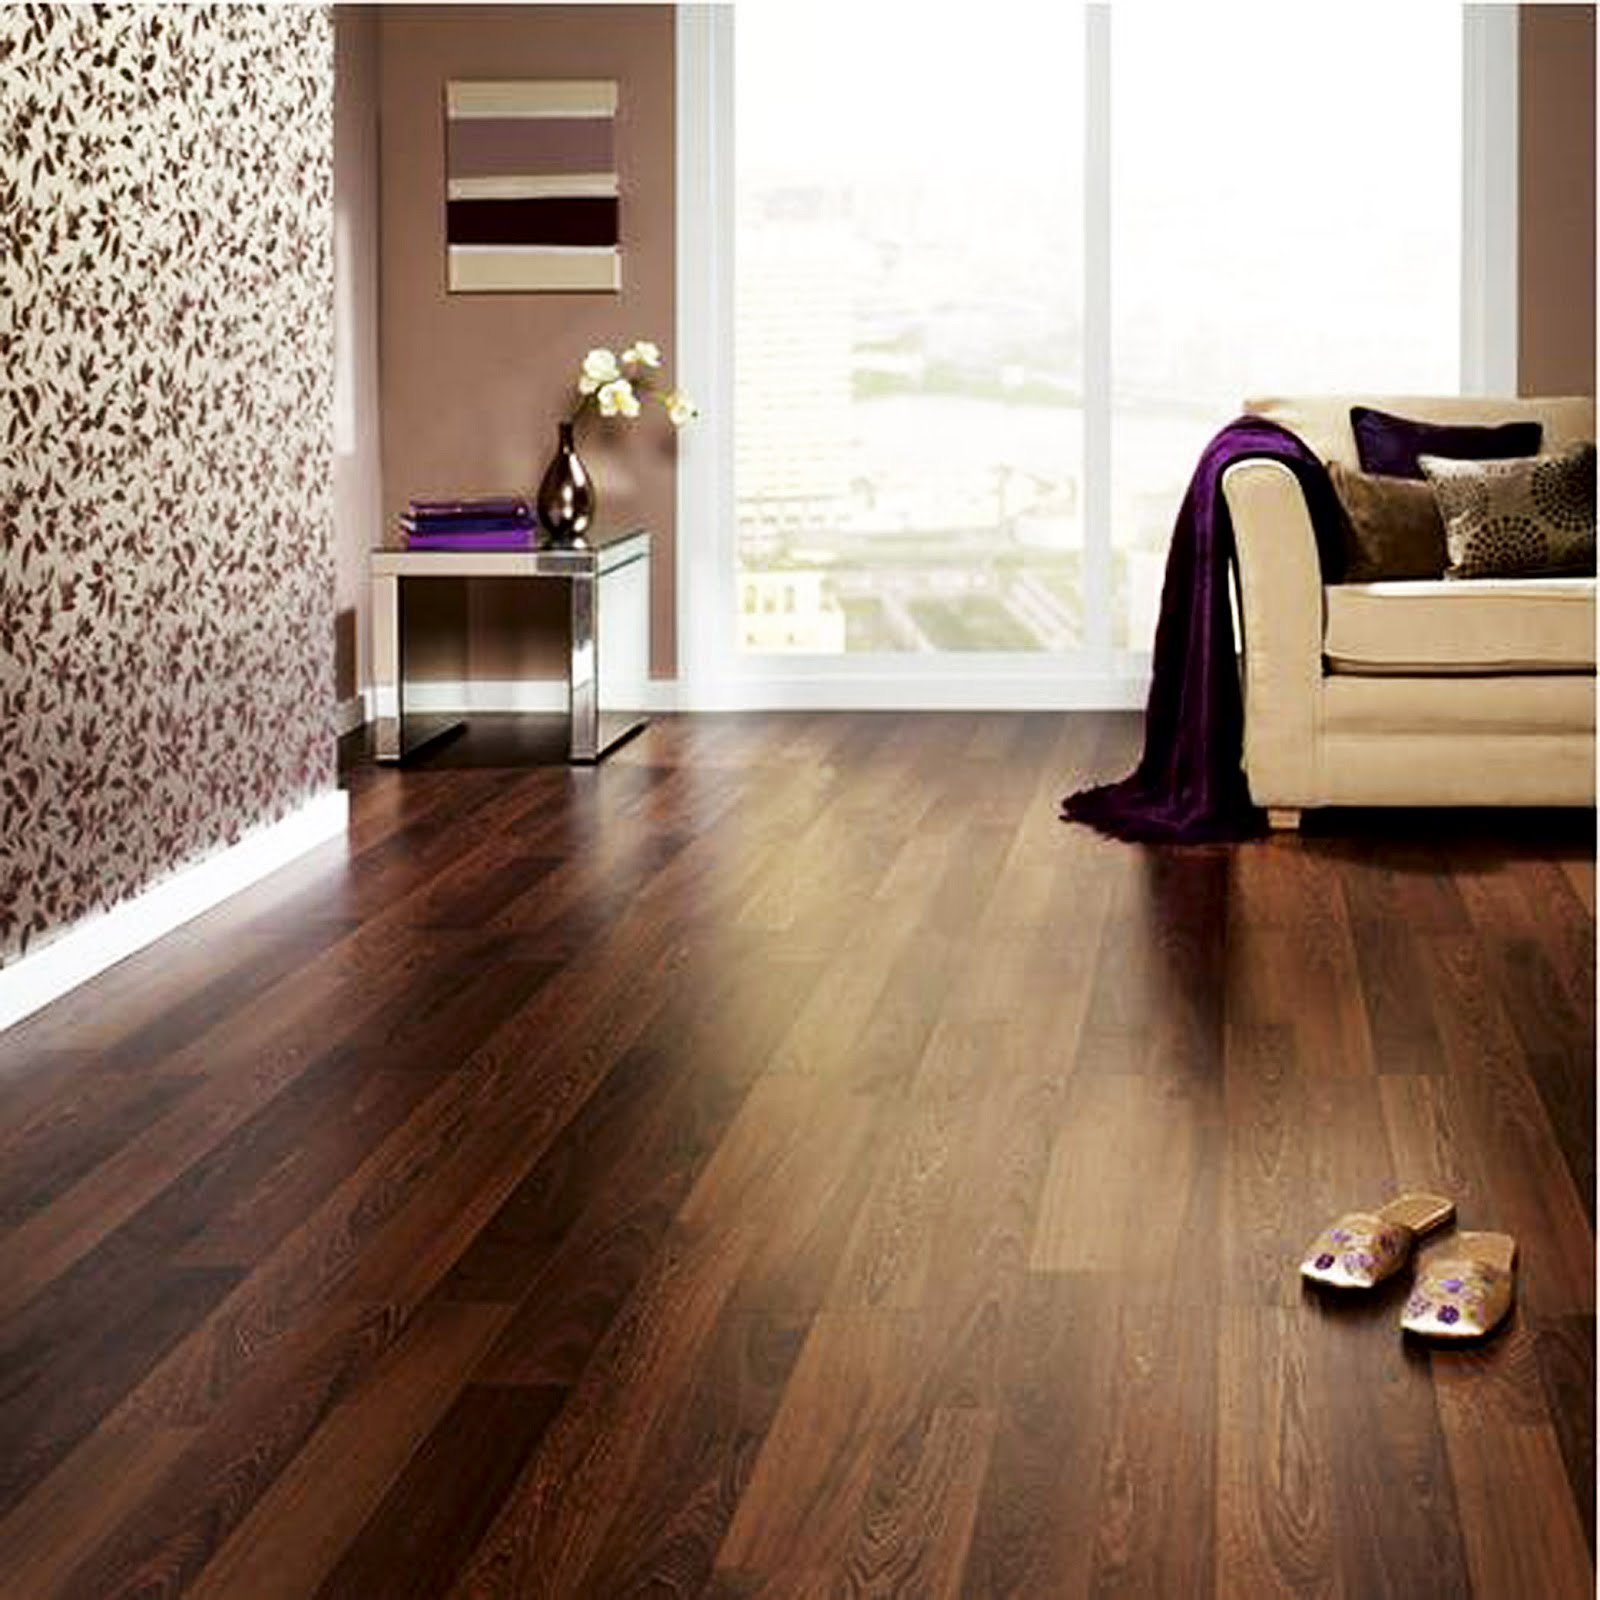 Get Best Parquet Flooring Dubai Abu Dhabi Across Uae At